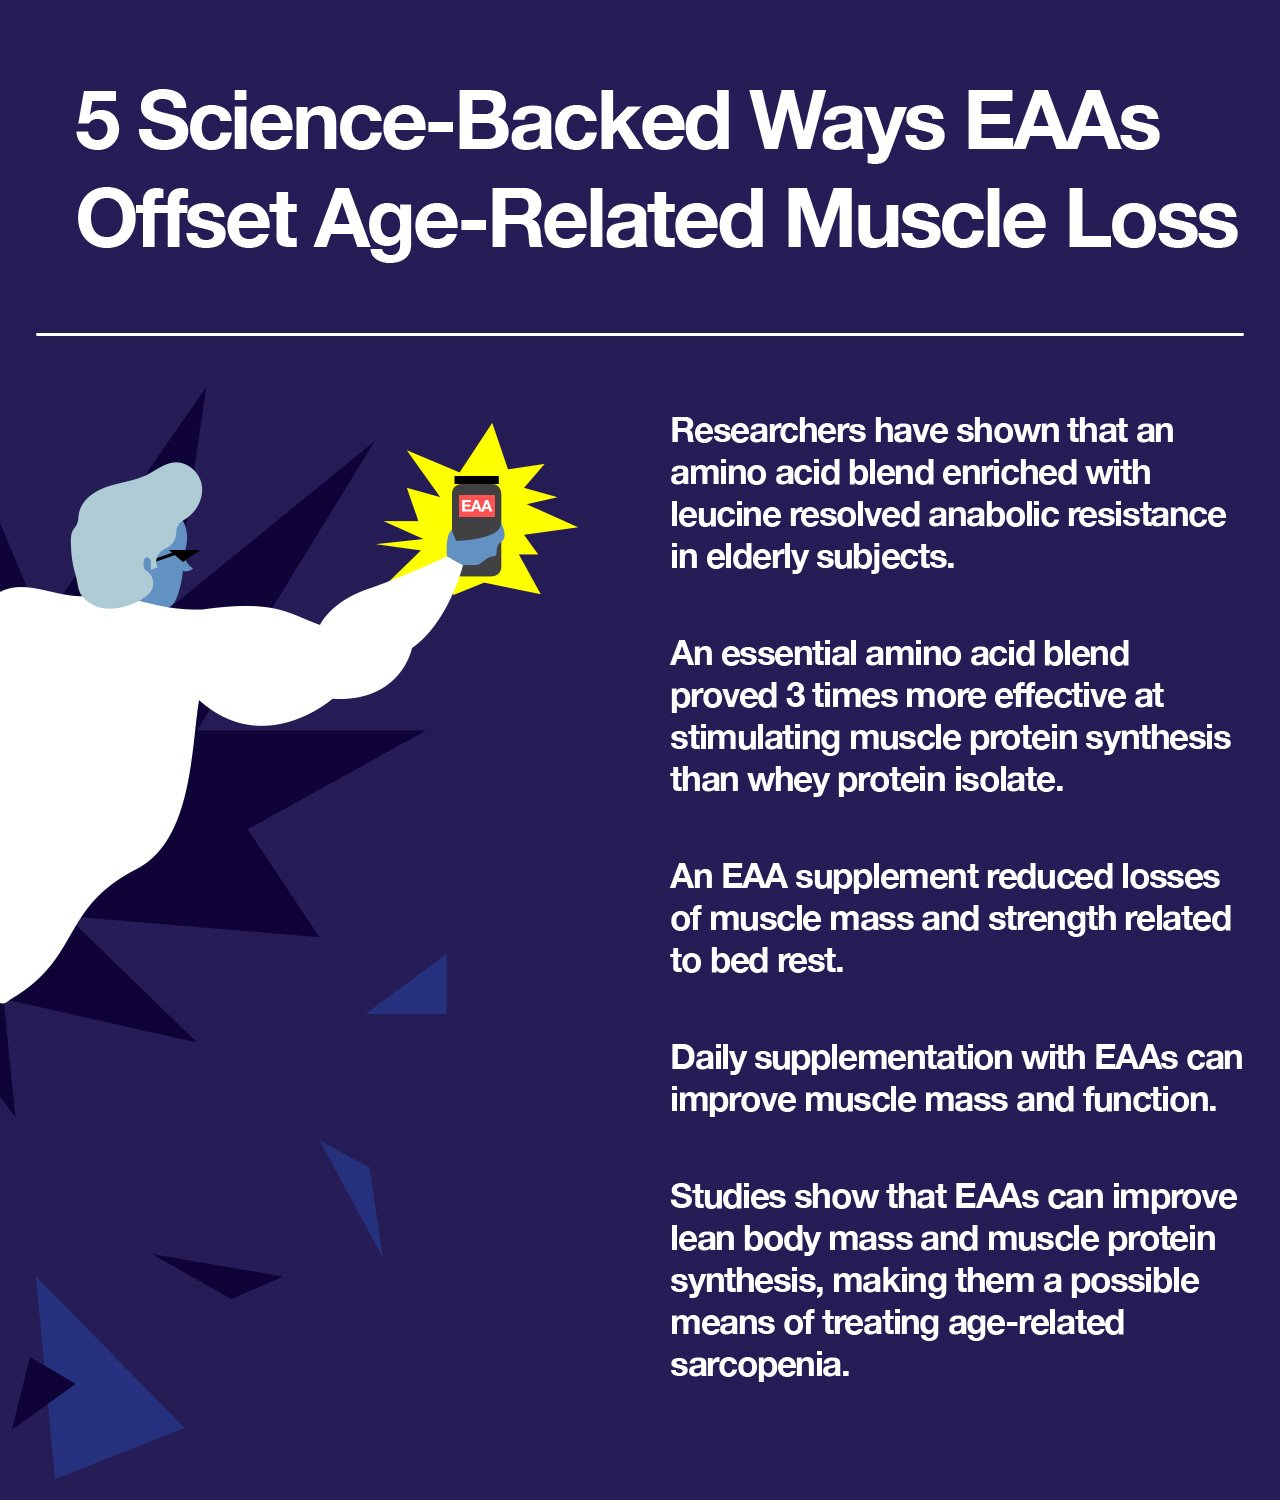 5 Science-Backed Ways EAAs Offset Age-Related Muscle Loss